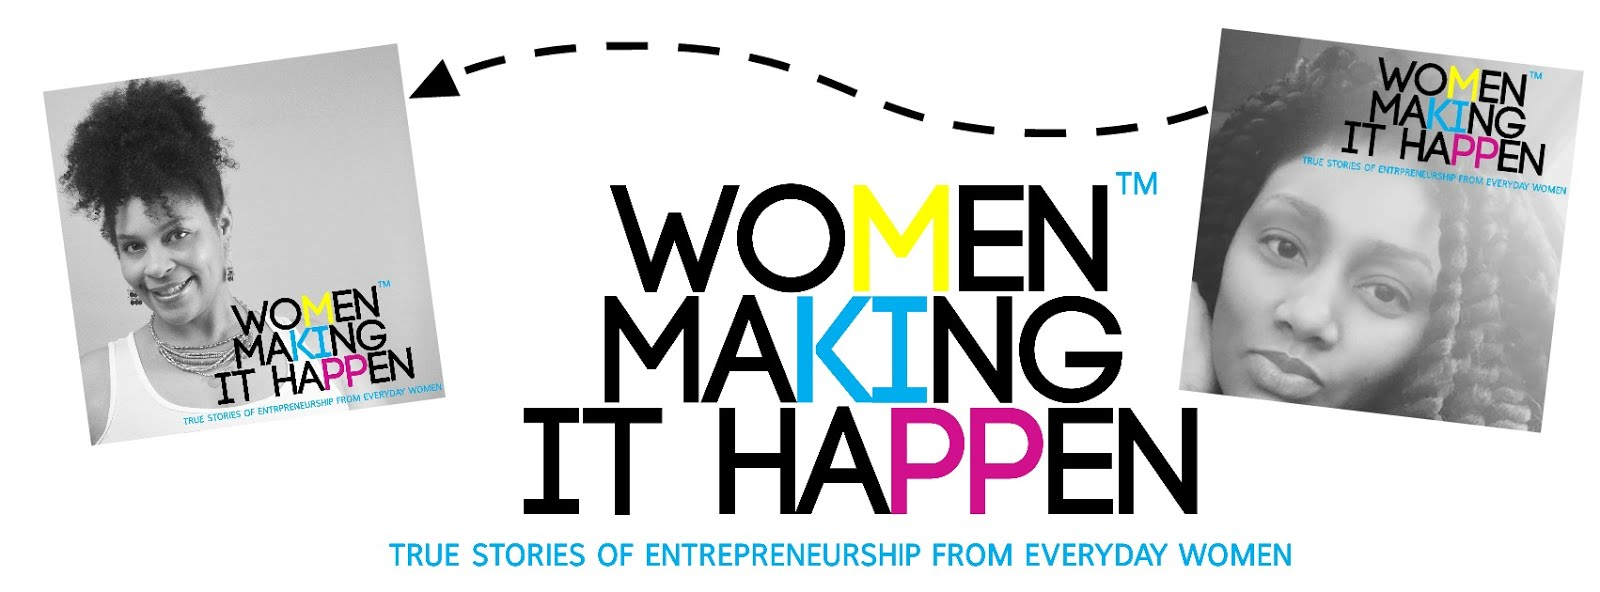 Women Making it Happen